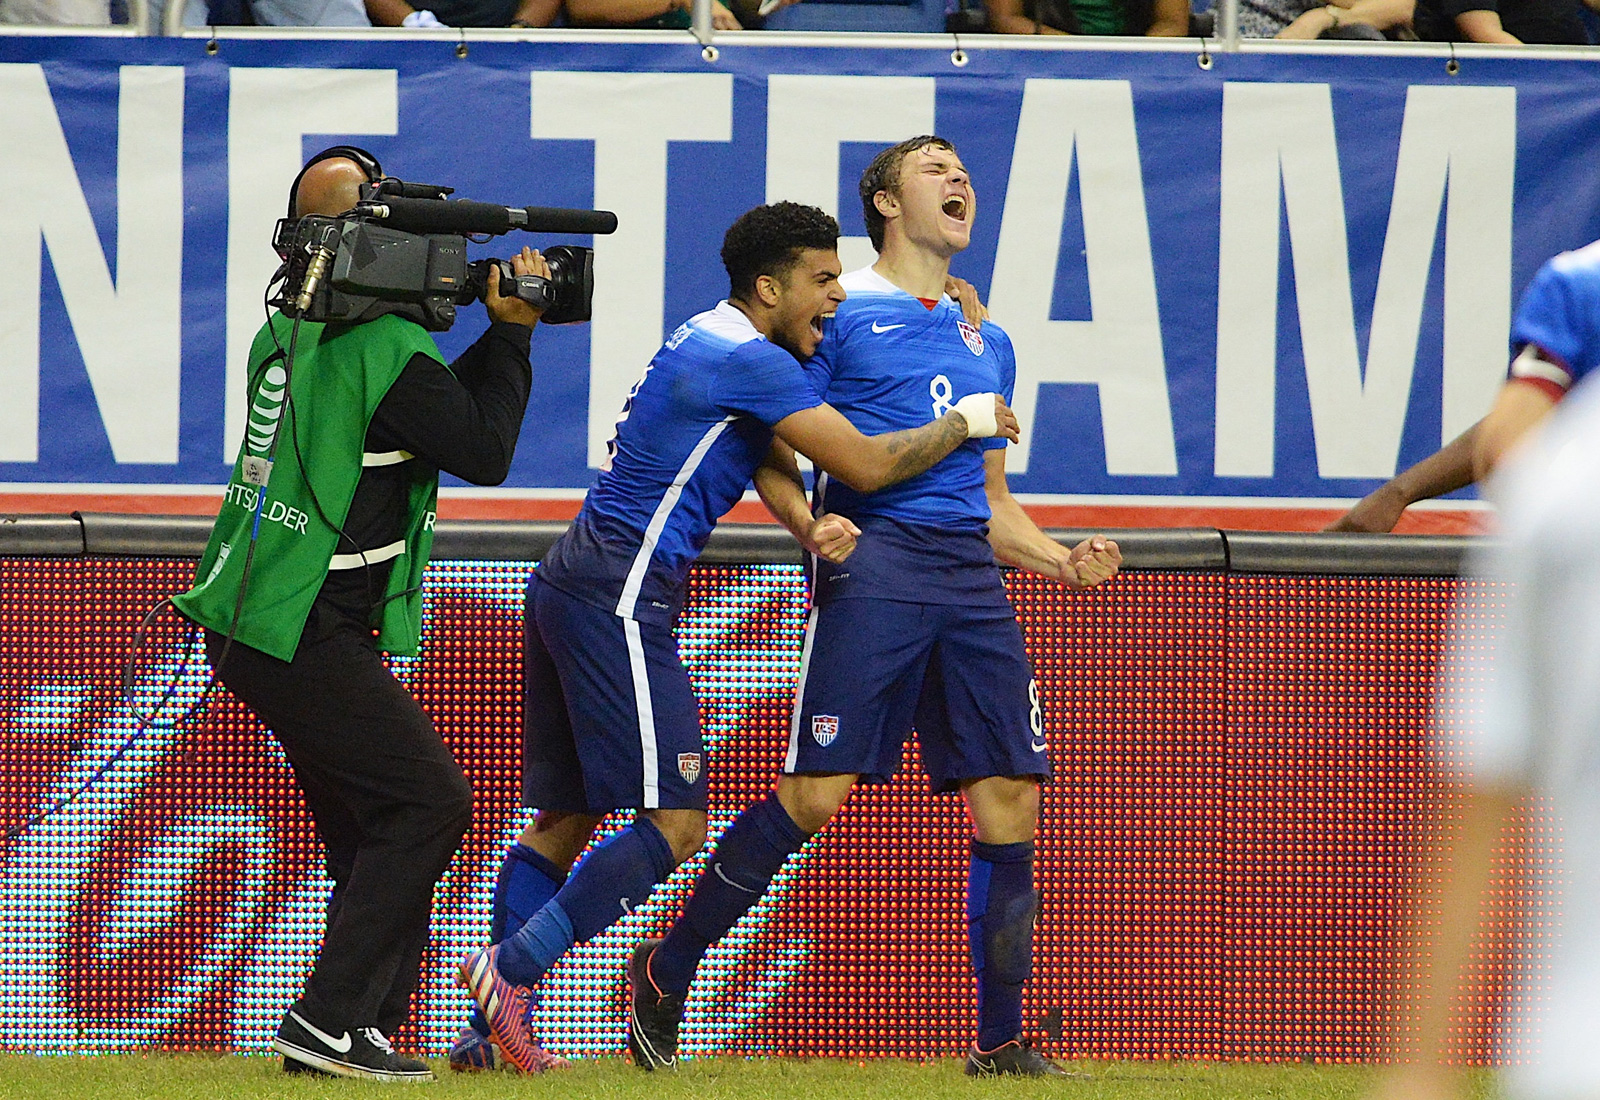 Jordan Morris etched his name in U.S.-Mexico lore, as the Stanford University forward scored in his first senior national team start to break a scoreless draw against El Tri at the Alamodome.